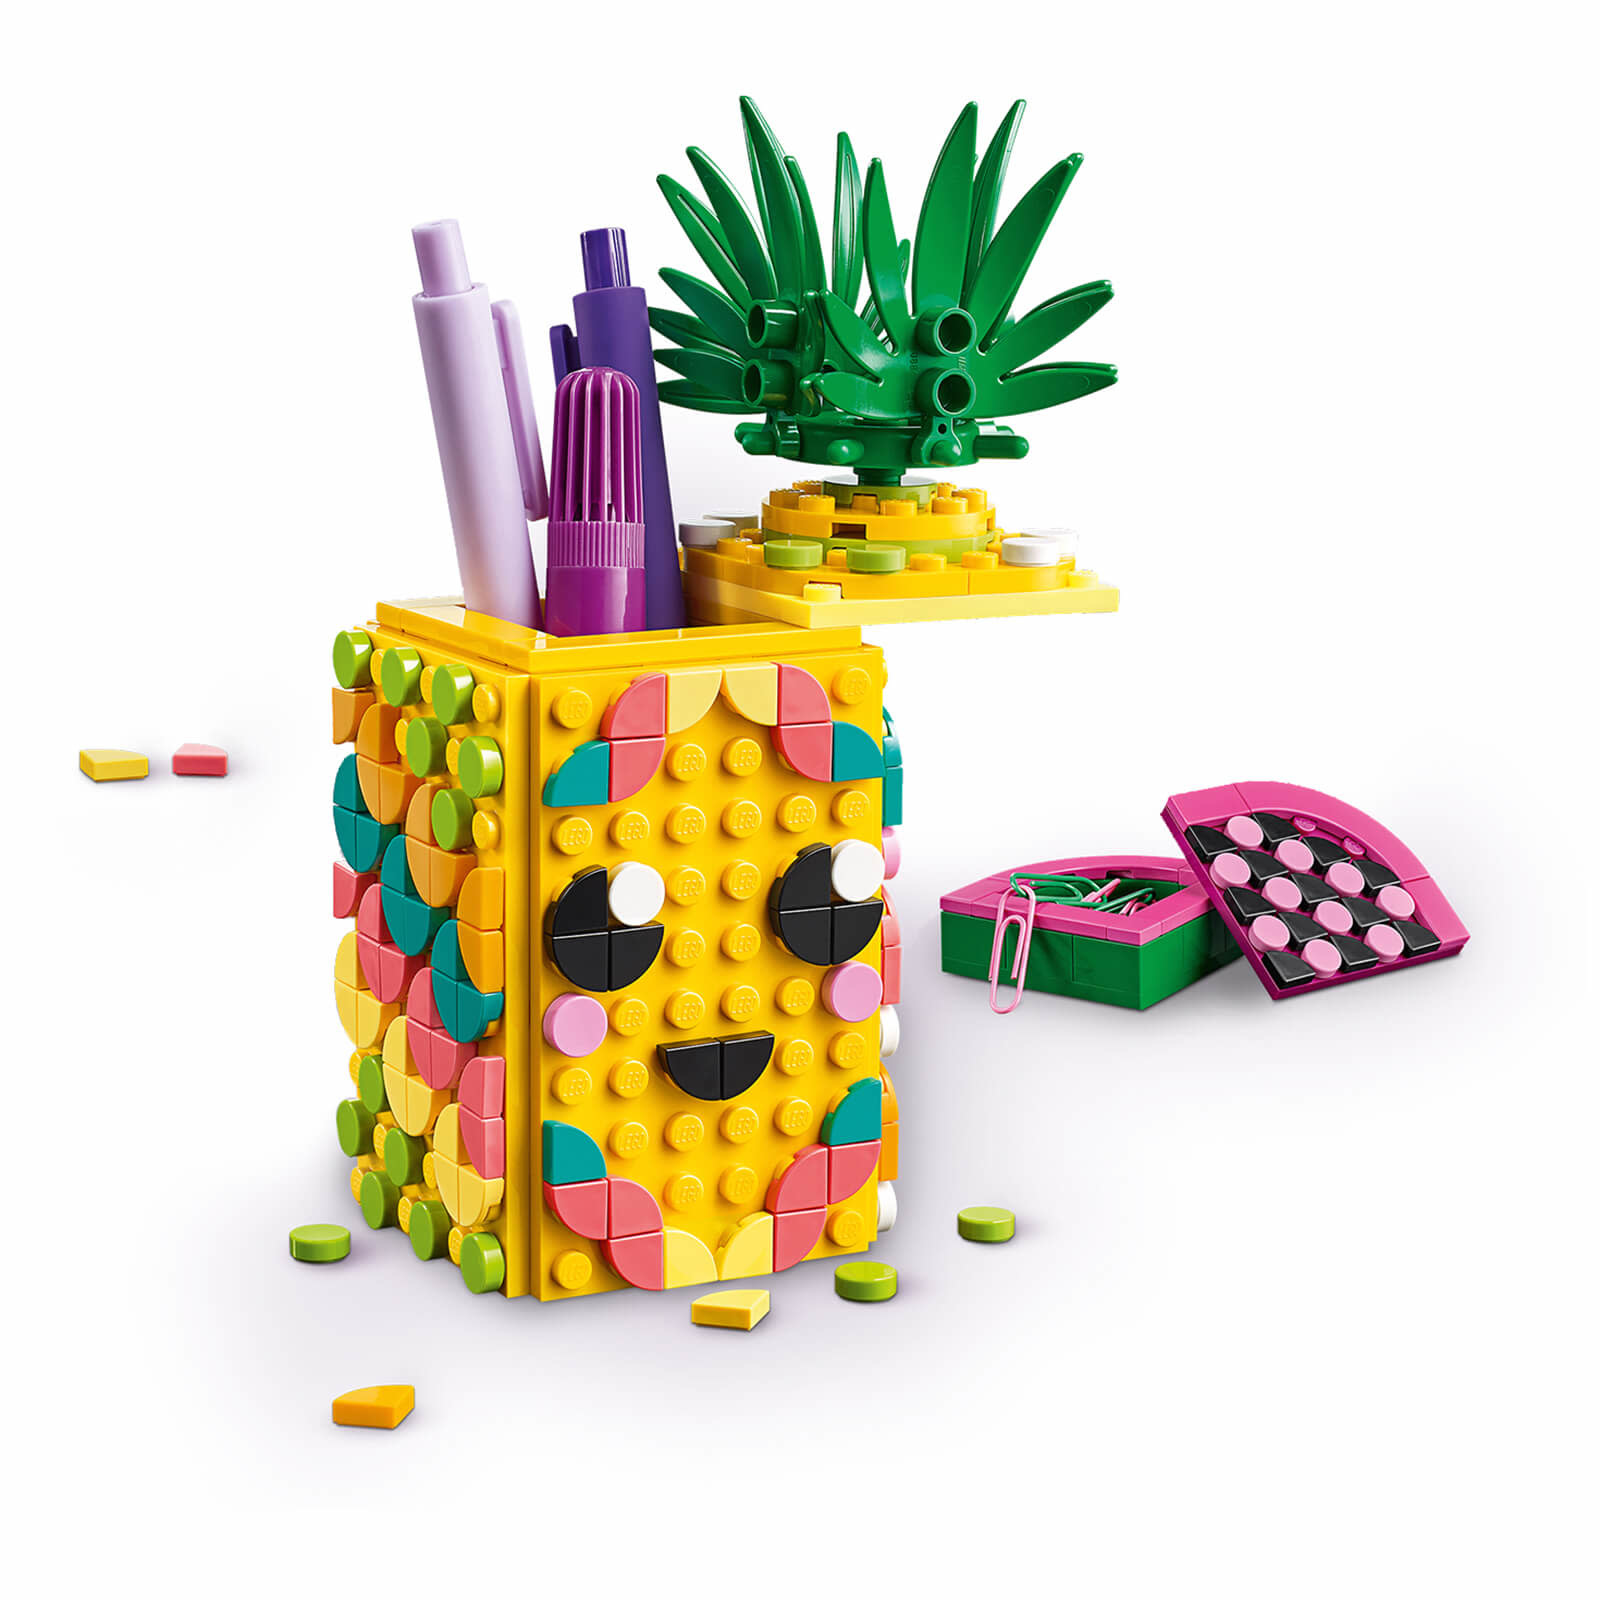 41906 Pineapple Pencil Holder by LEGO DOTS